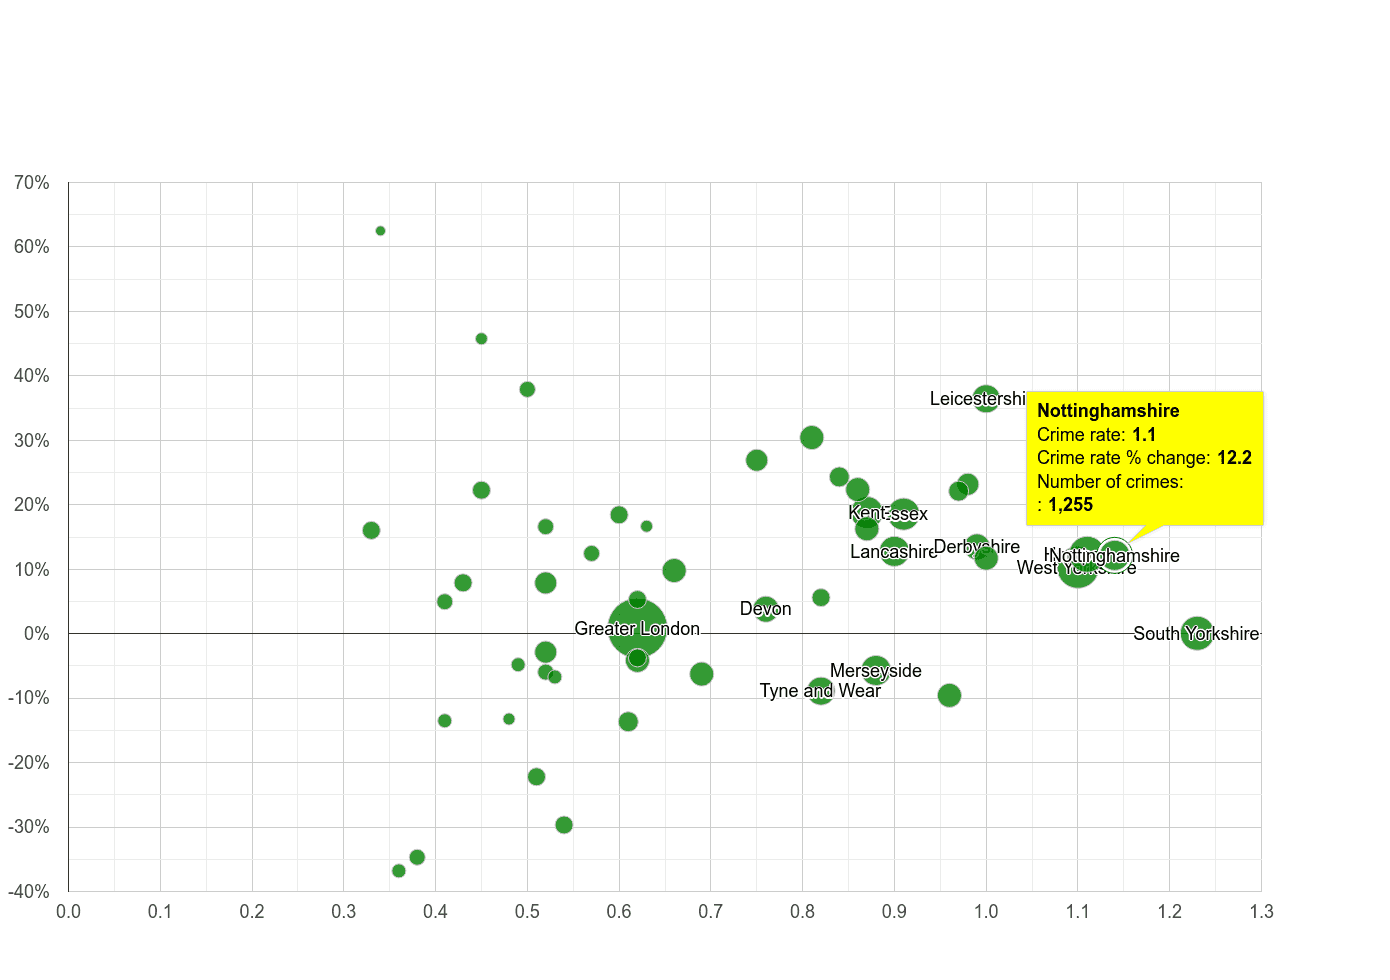 Nottinghamshire possession of weapons crime rate compared to other counties